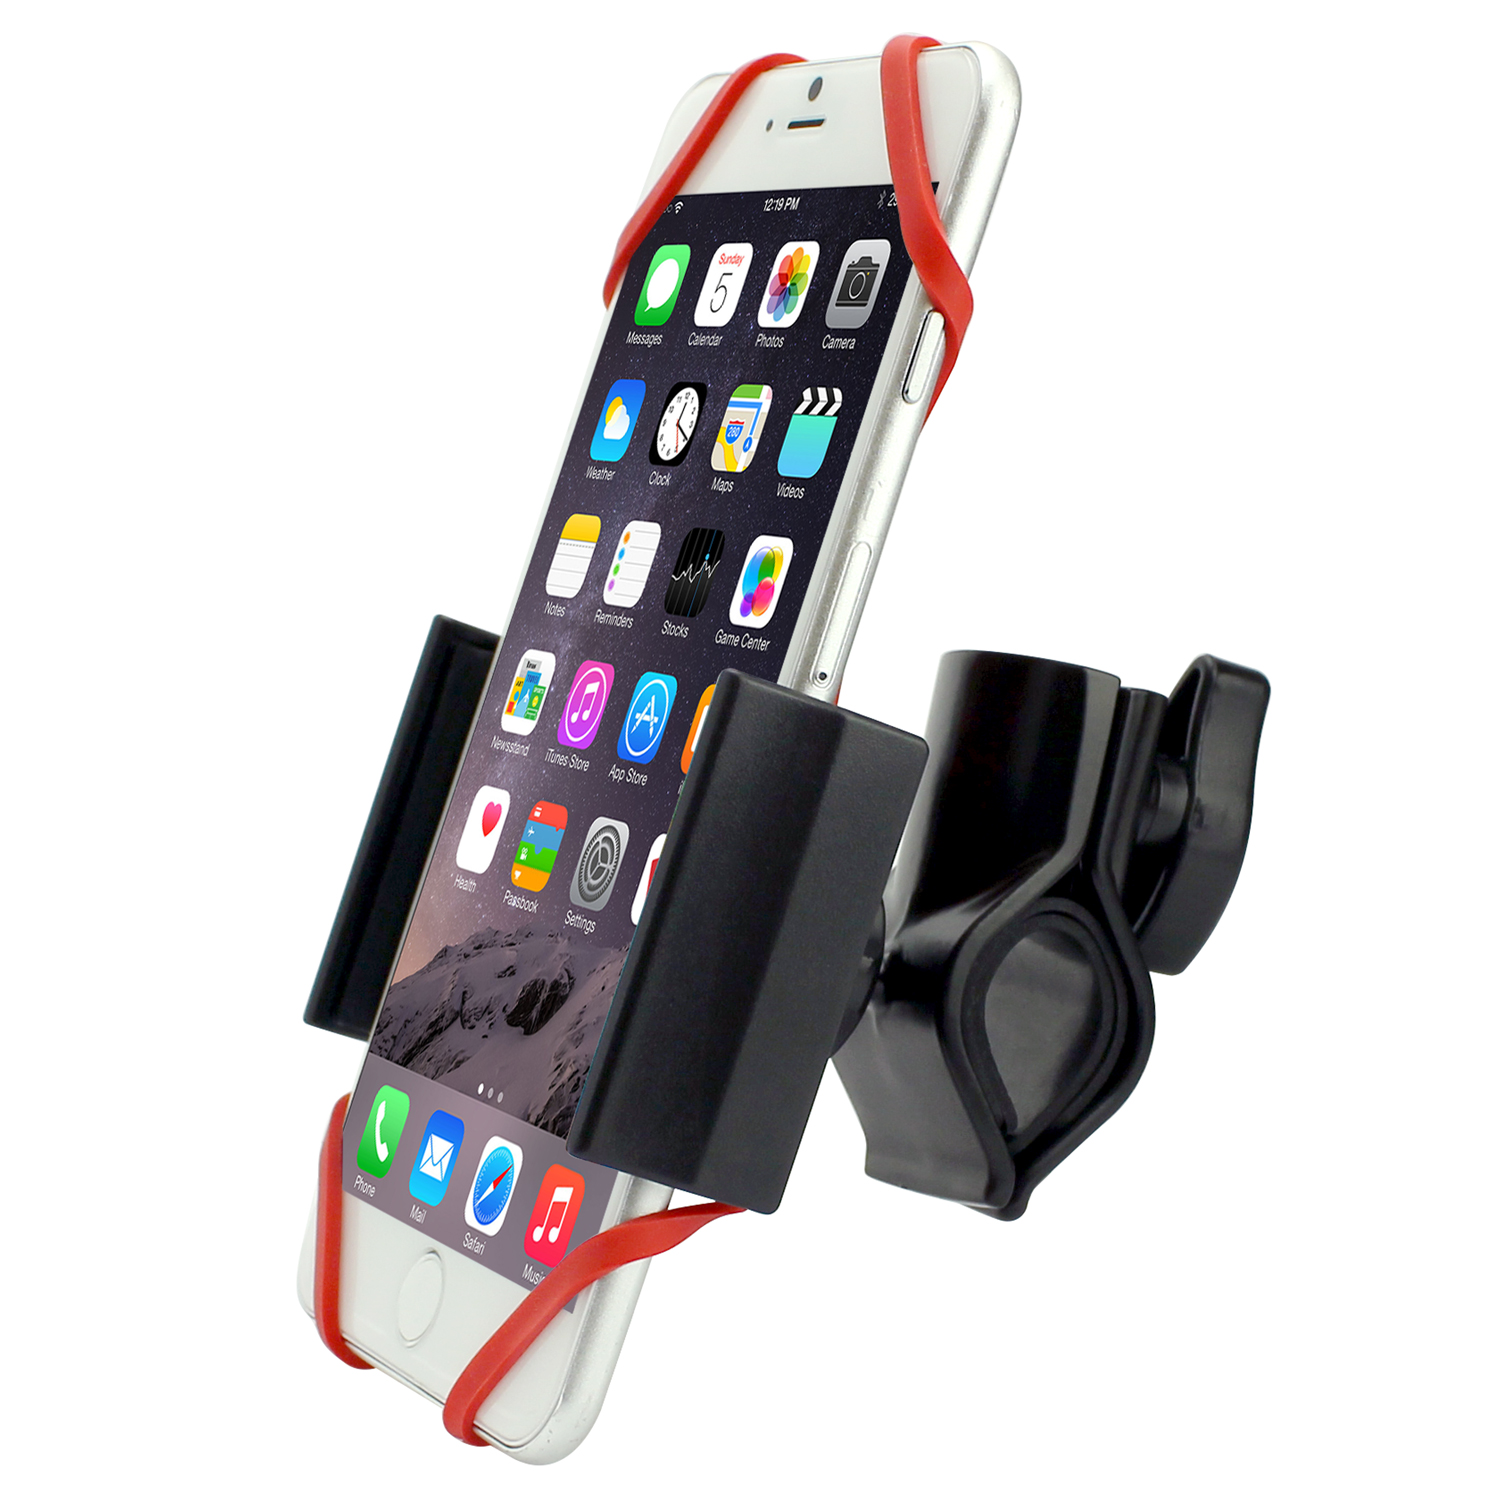 LG Q6 Bike Phone Mount Adjustable Black